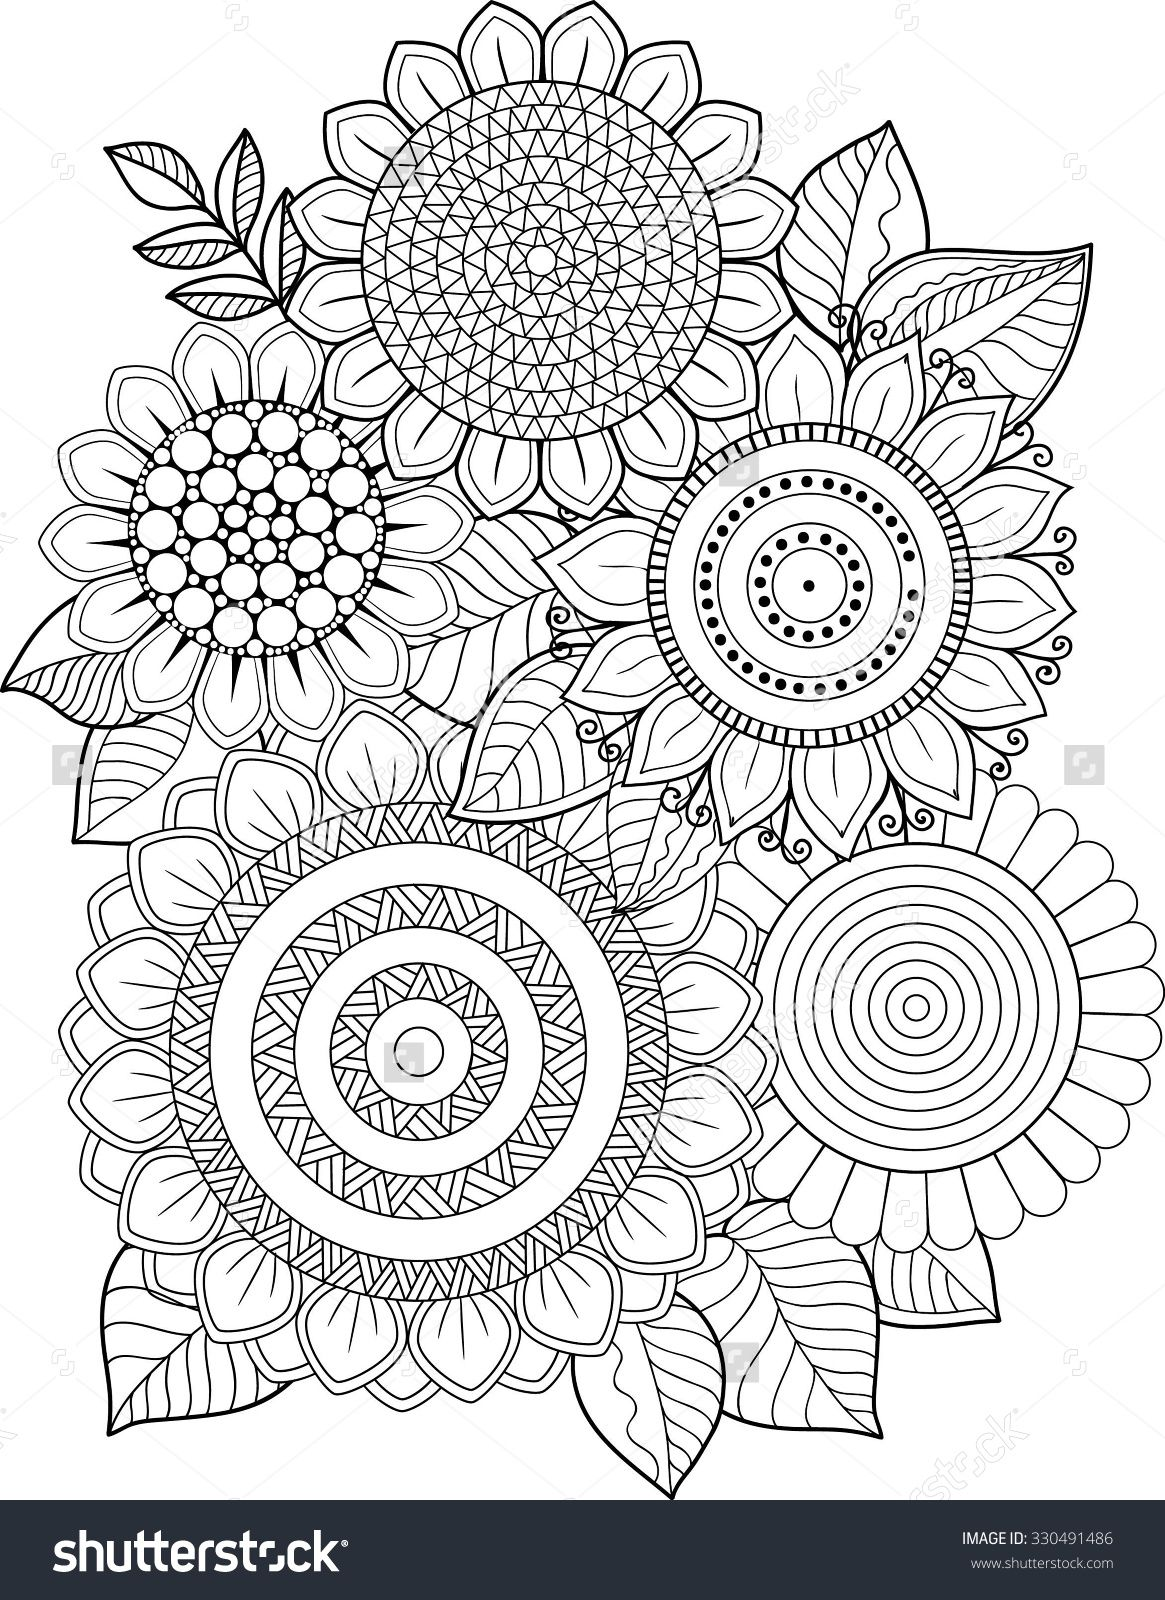 Coloring Book Adults Meditation And Relax T Shirt Graphic Design Print For Summer Clothing Isolated Vector Sunflower Pattern